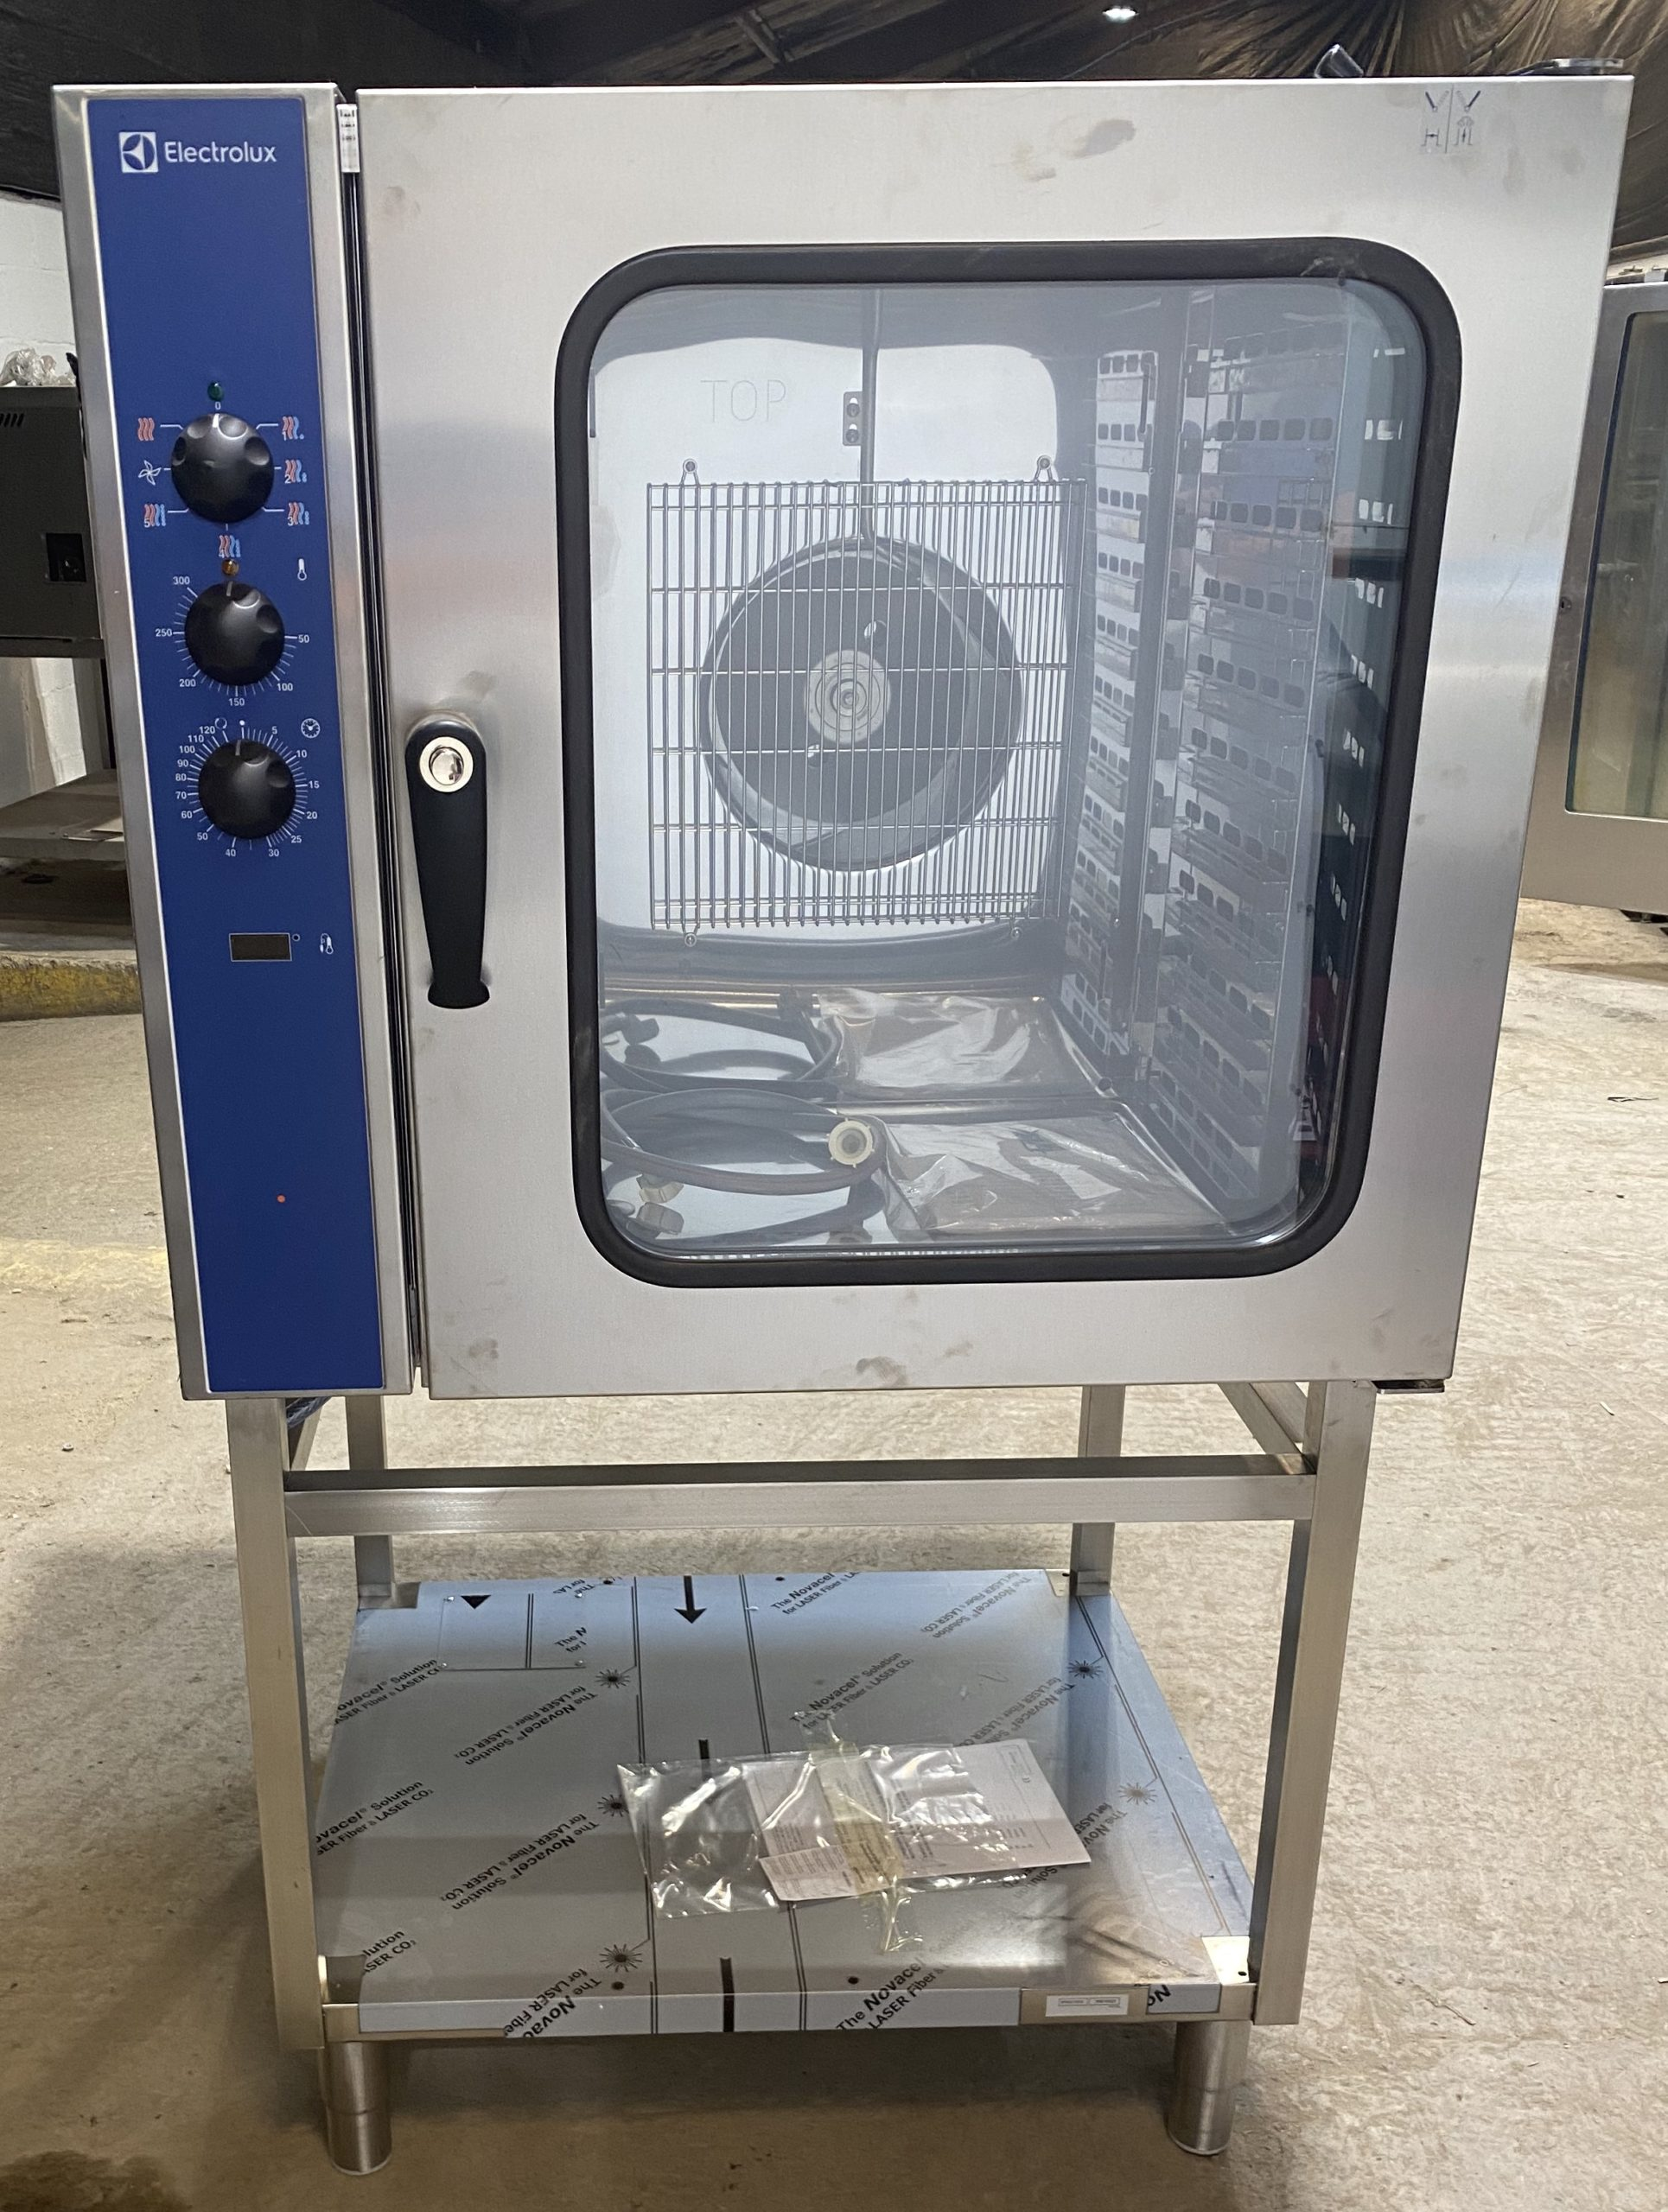 ELECTROLUX ECFE 10 Grid Convection Oven with Humidity.